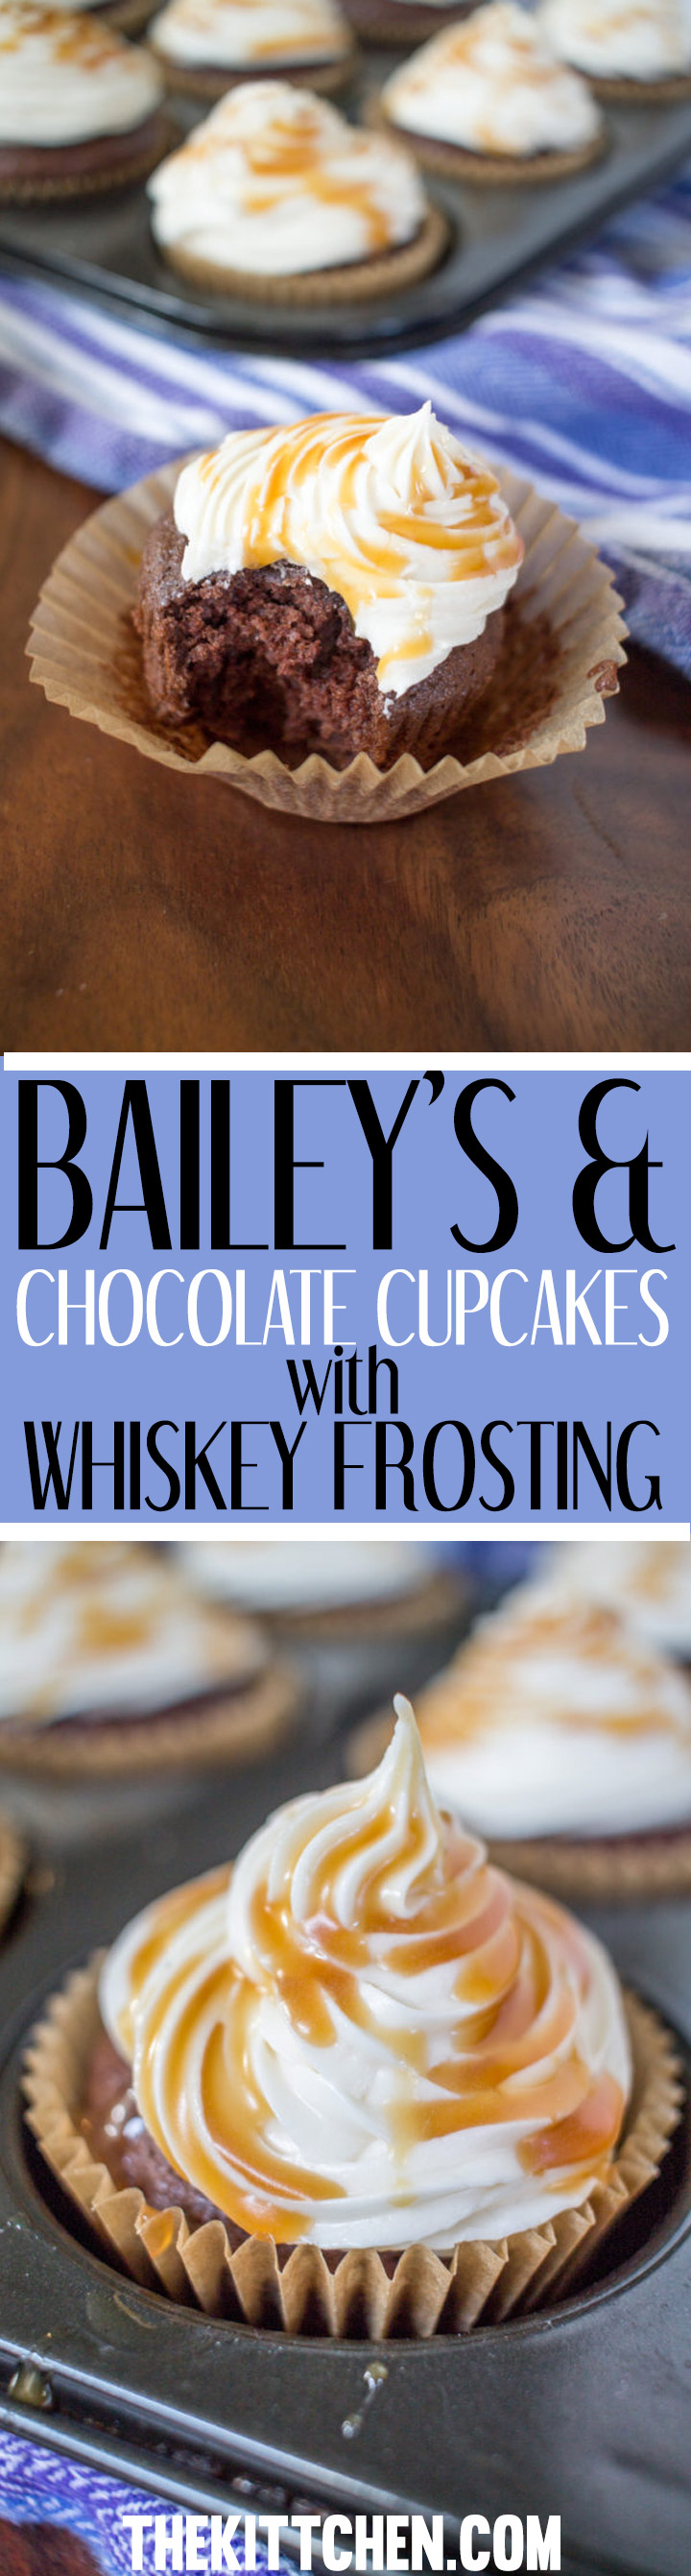 These Bailey's and Chocolate Cupcakes with Whiskey Frosting are a delicious and boozy way to celebrate St. Patrick's Day.